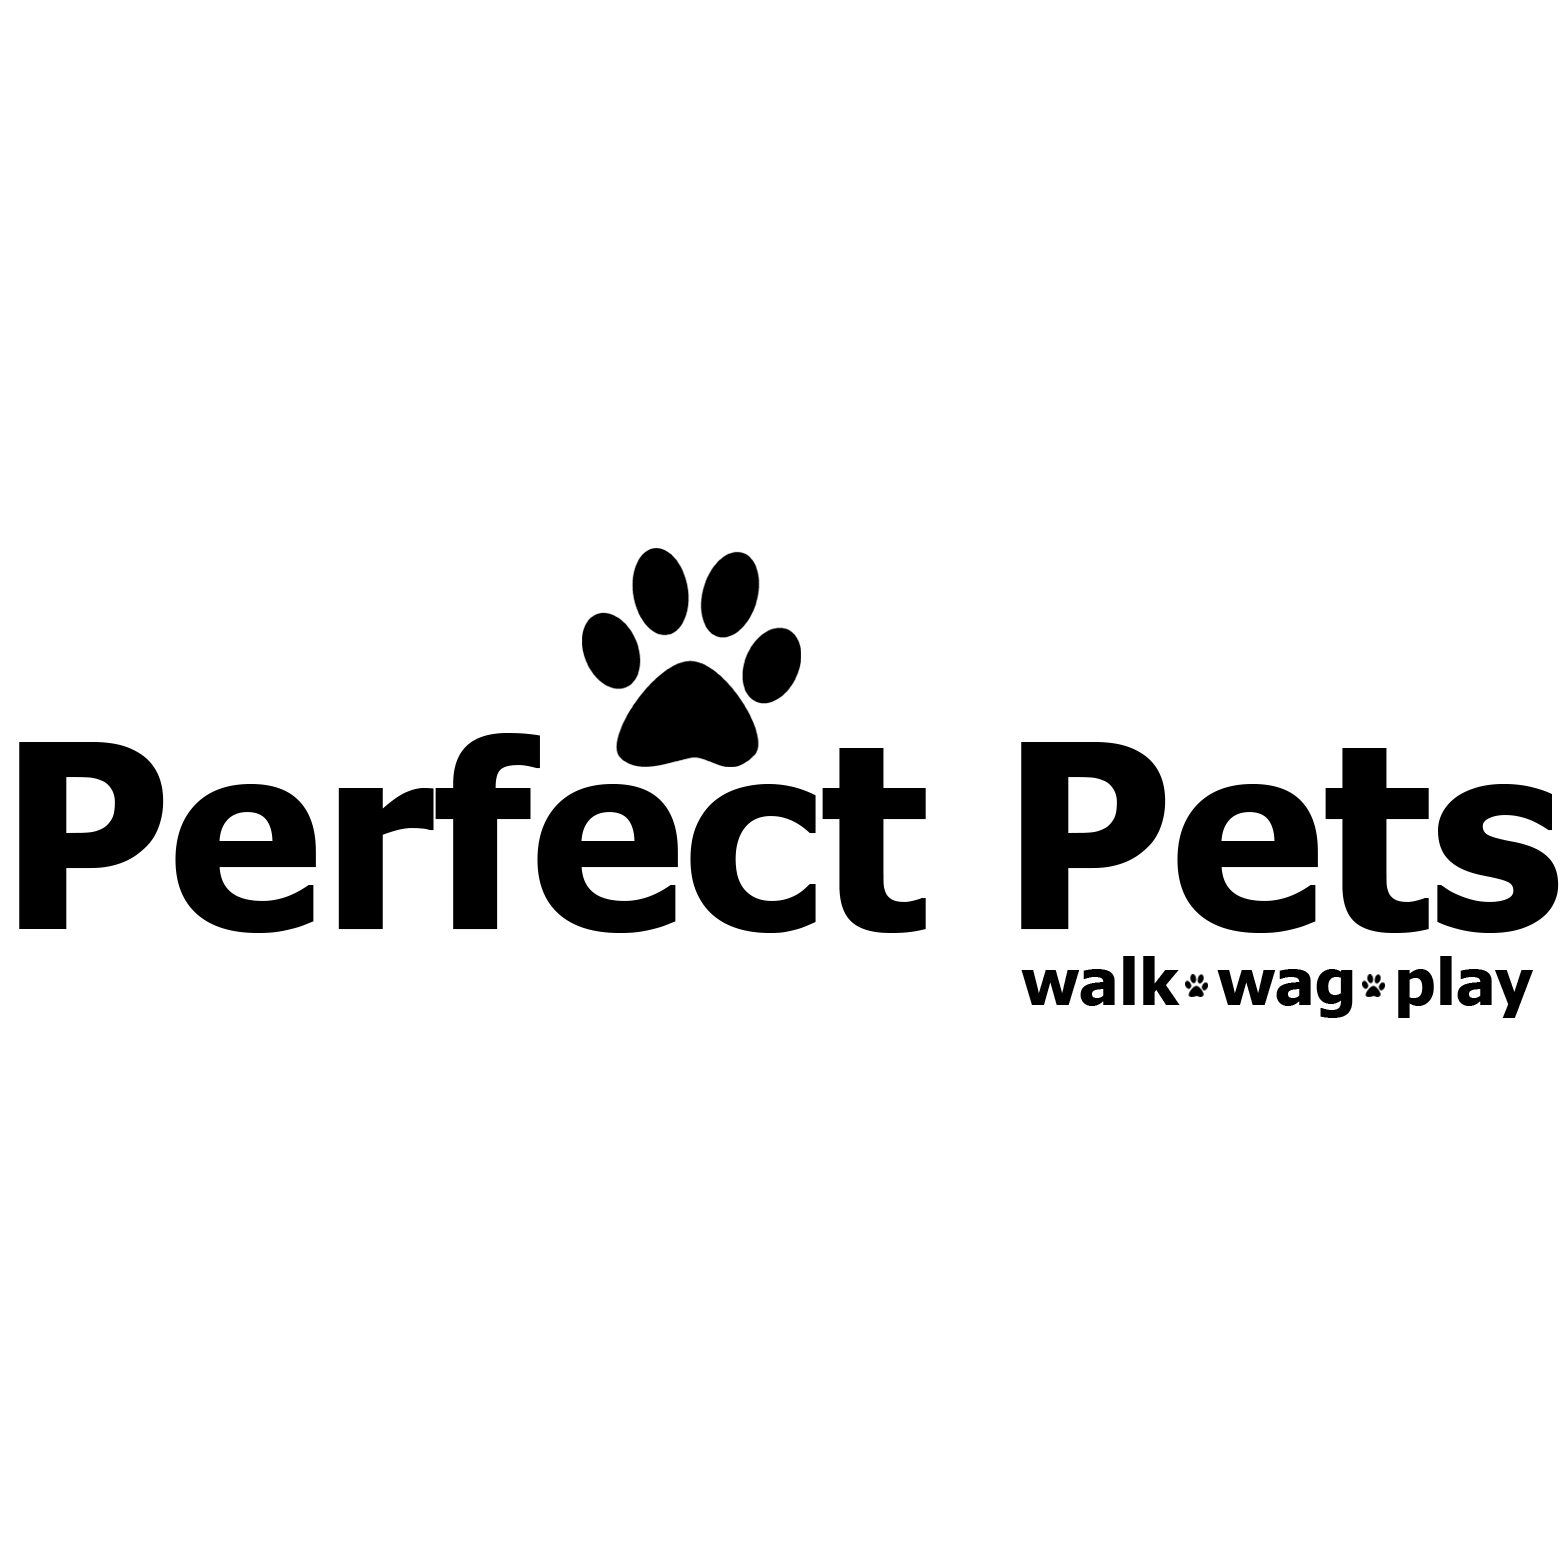 Perfect Pets Doggy Day Care, Grooming, Pet Sitting, Training & Nutrition